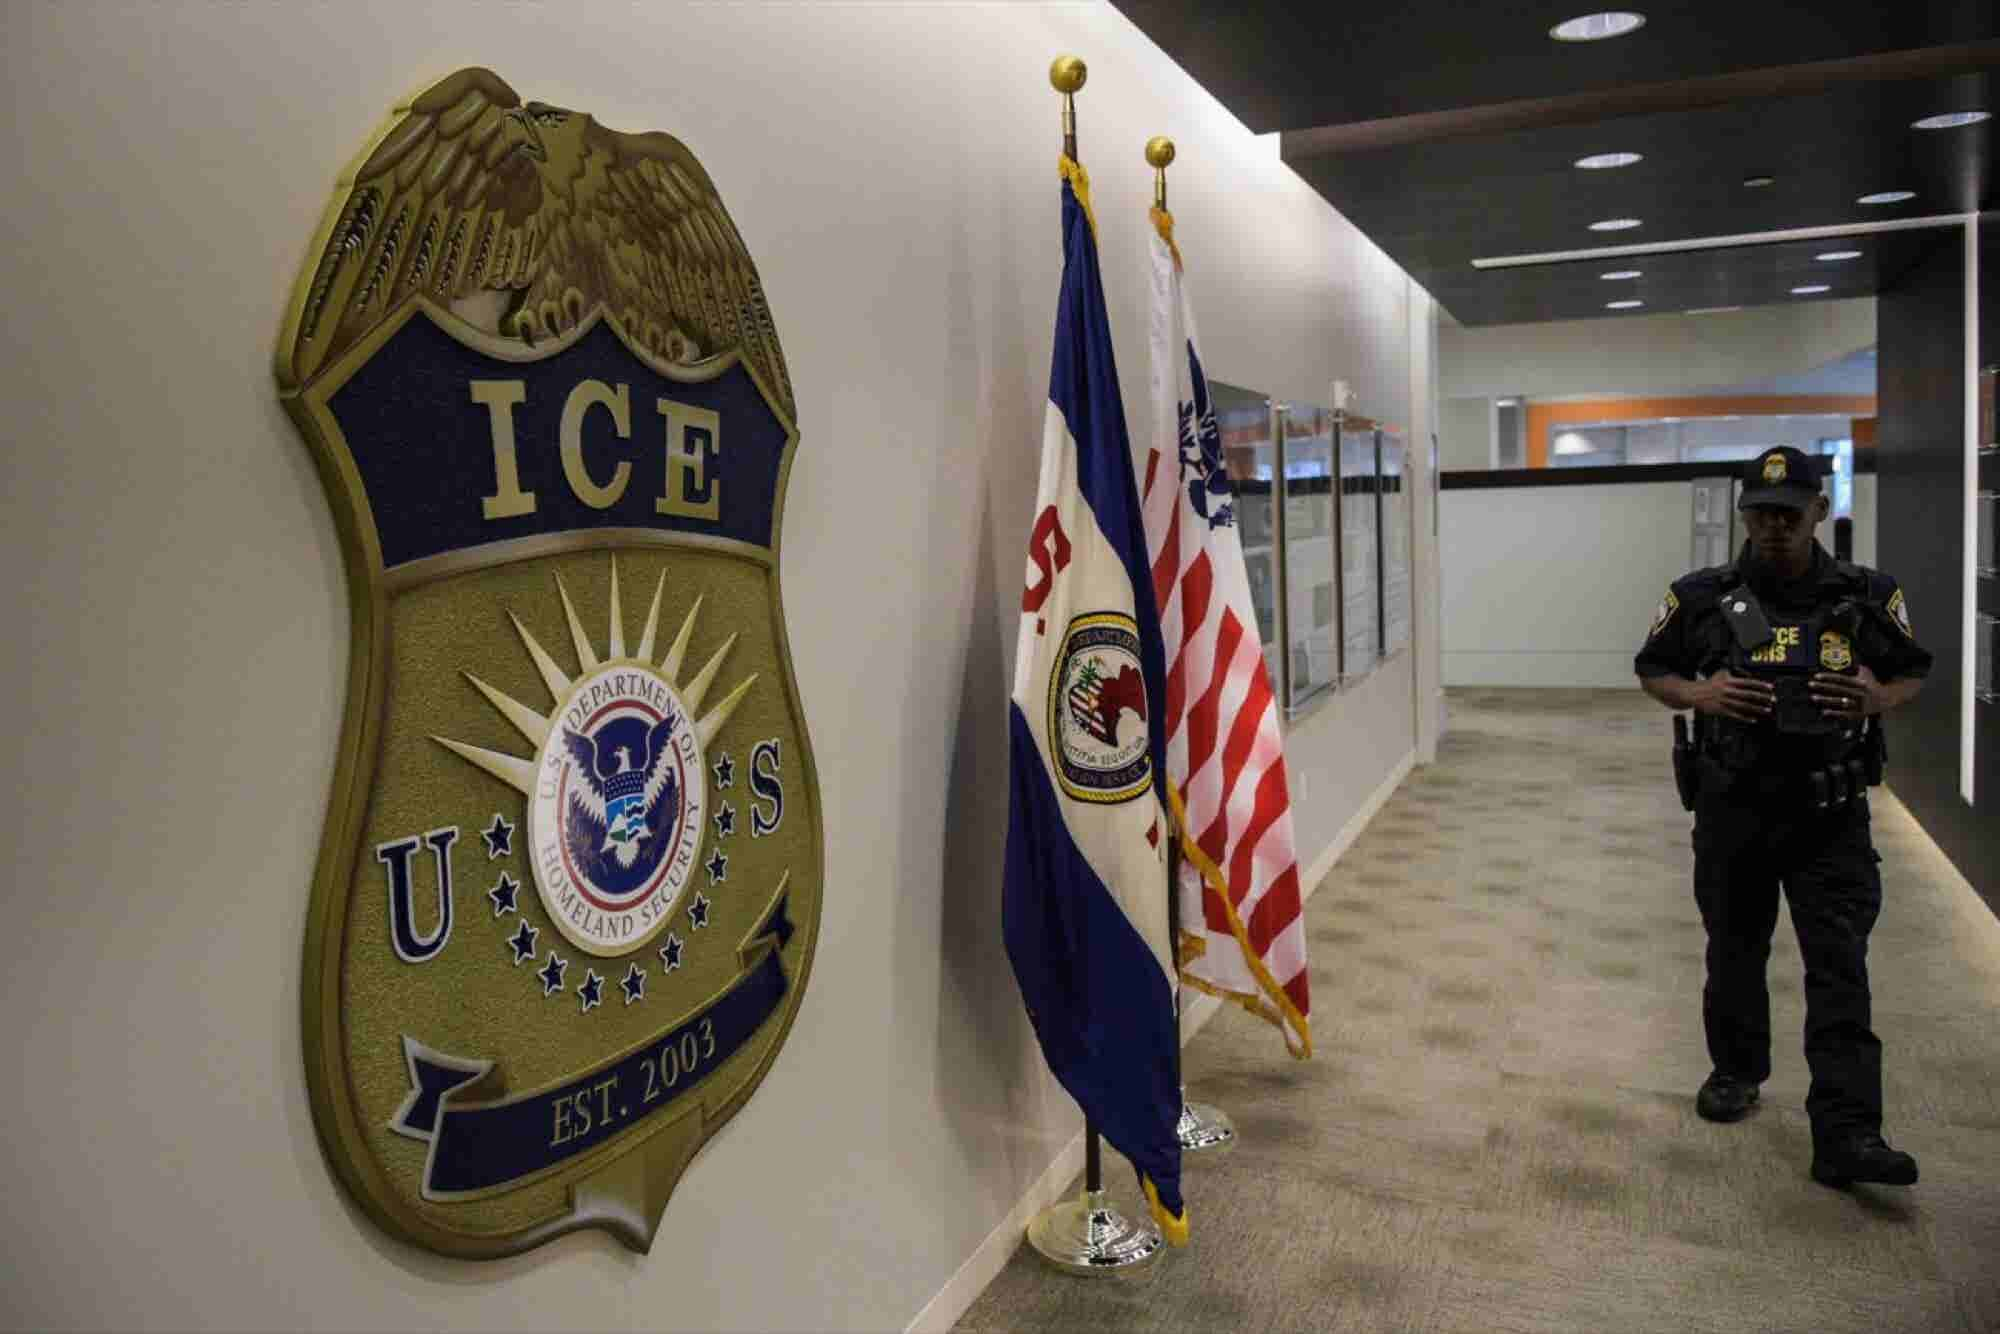 ICE Audit: Are You and Your Employees at Risk?